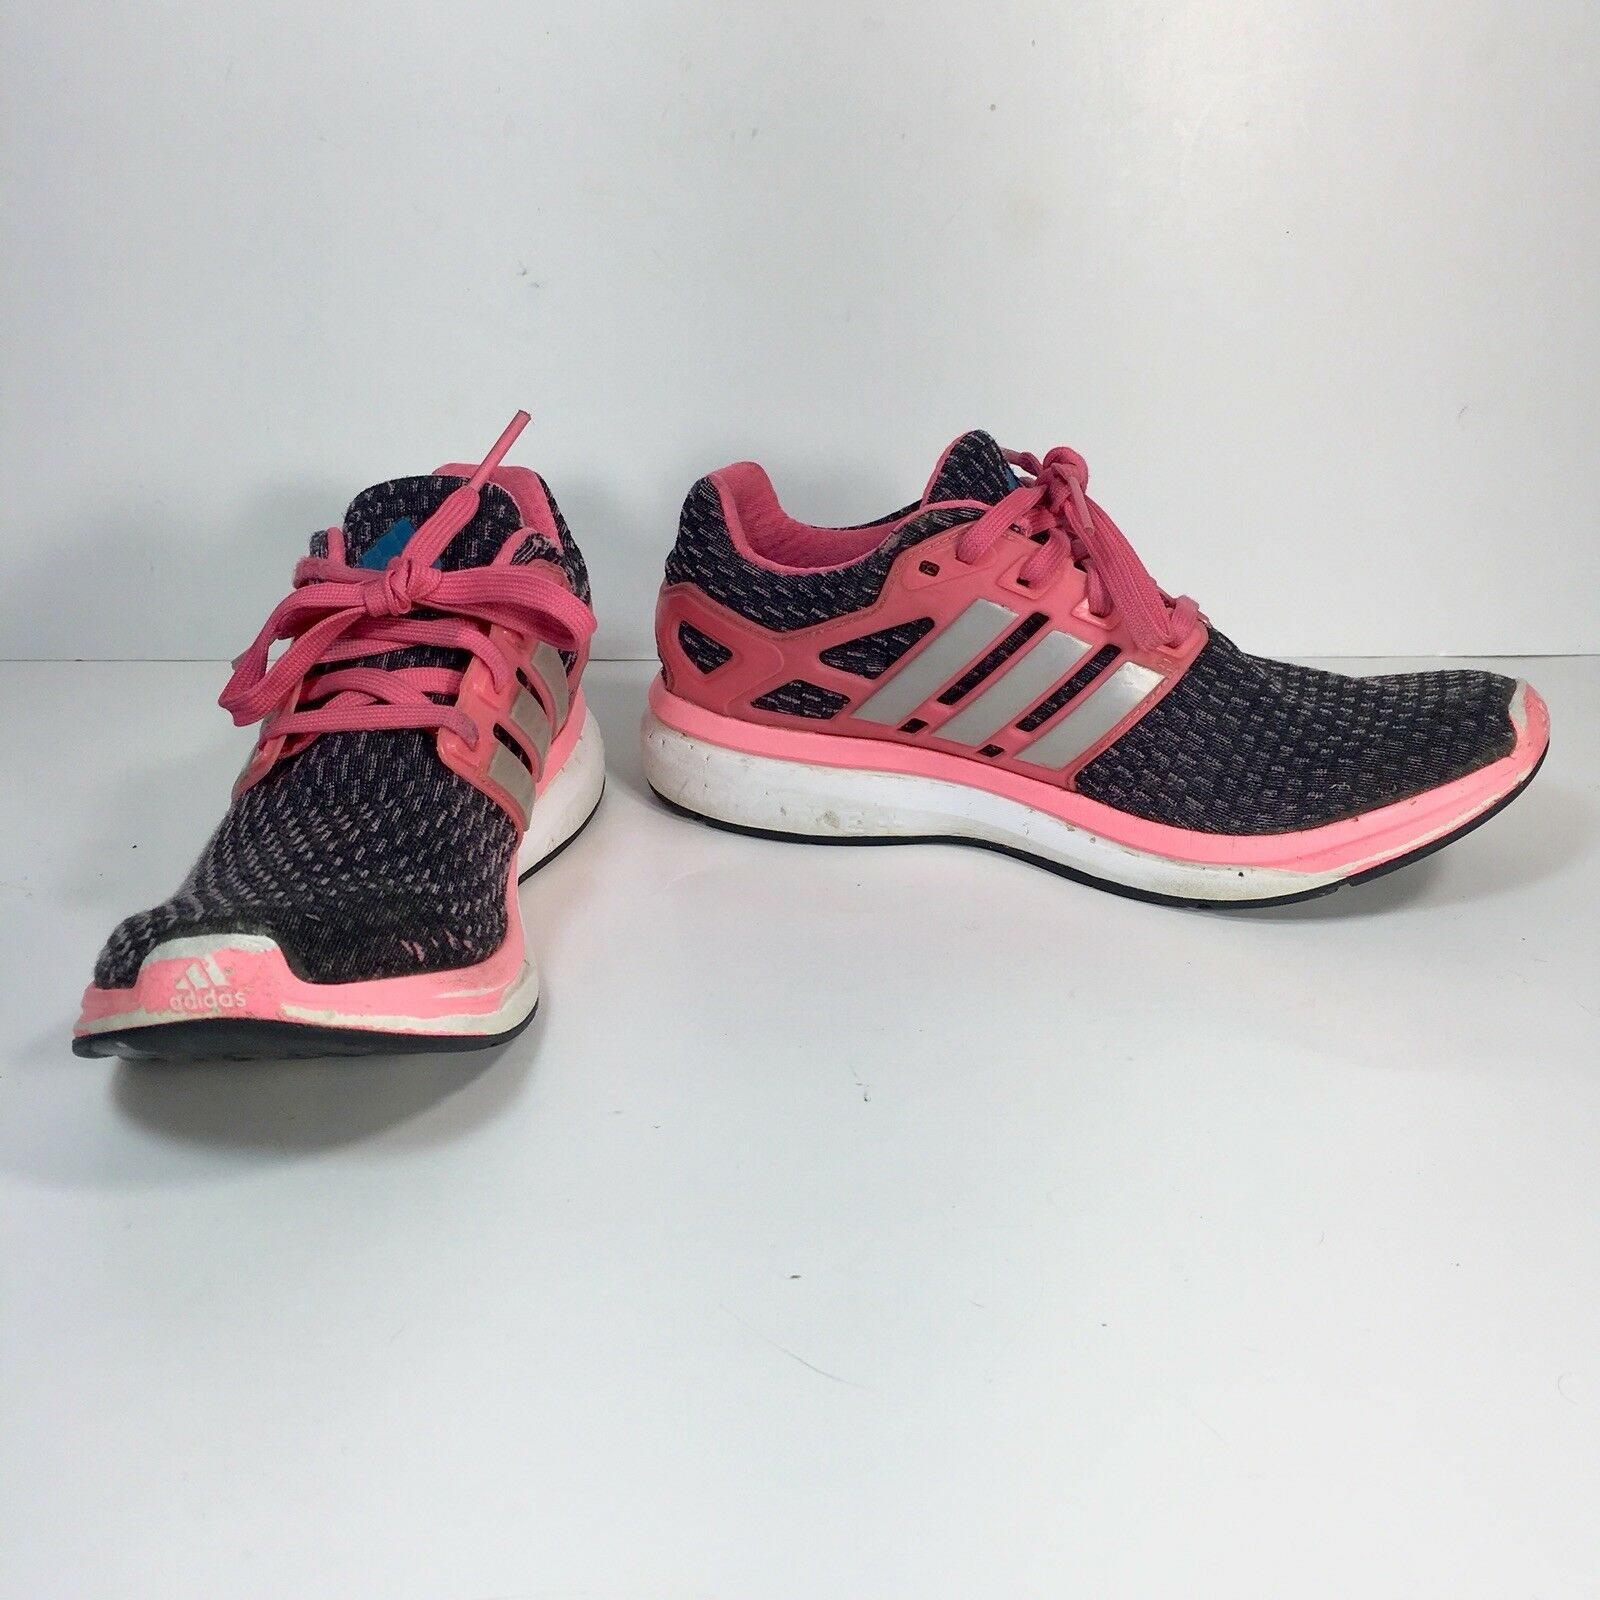 Adidas Pureboost Reveal Women's 5 M Pink White Black Training Gym Athletic Shoes